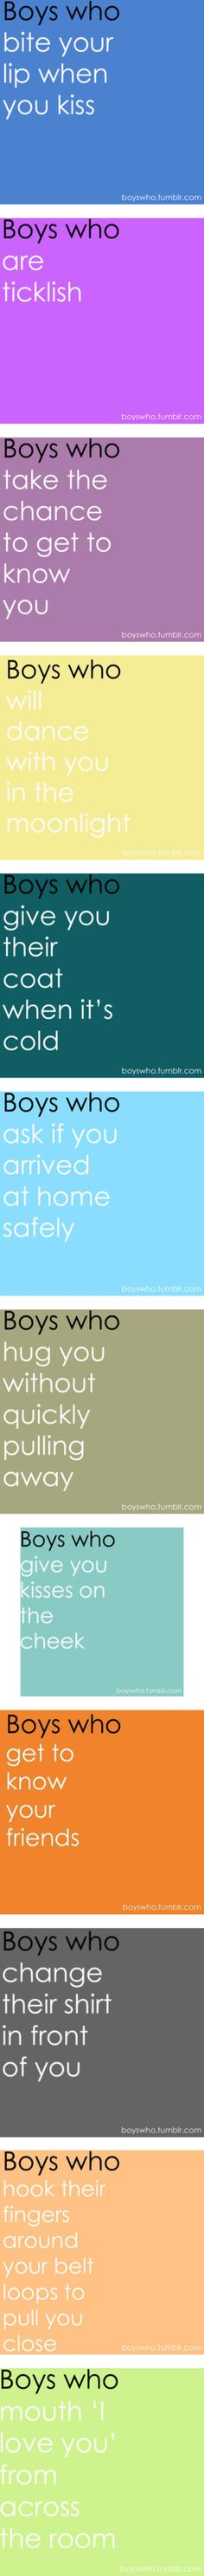 """I like Boys who..."" by i-am-the-girl-on-fire on Polyvore just girly things we like about boys"